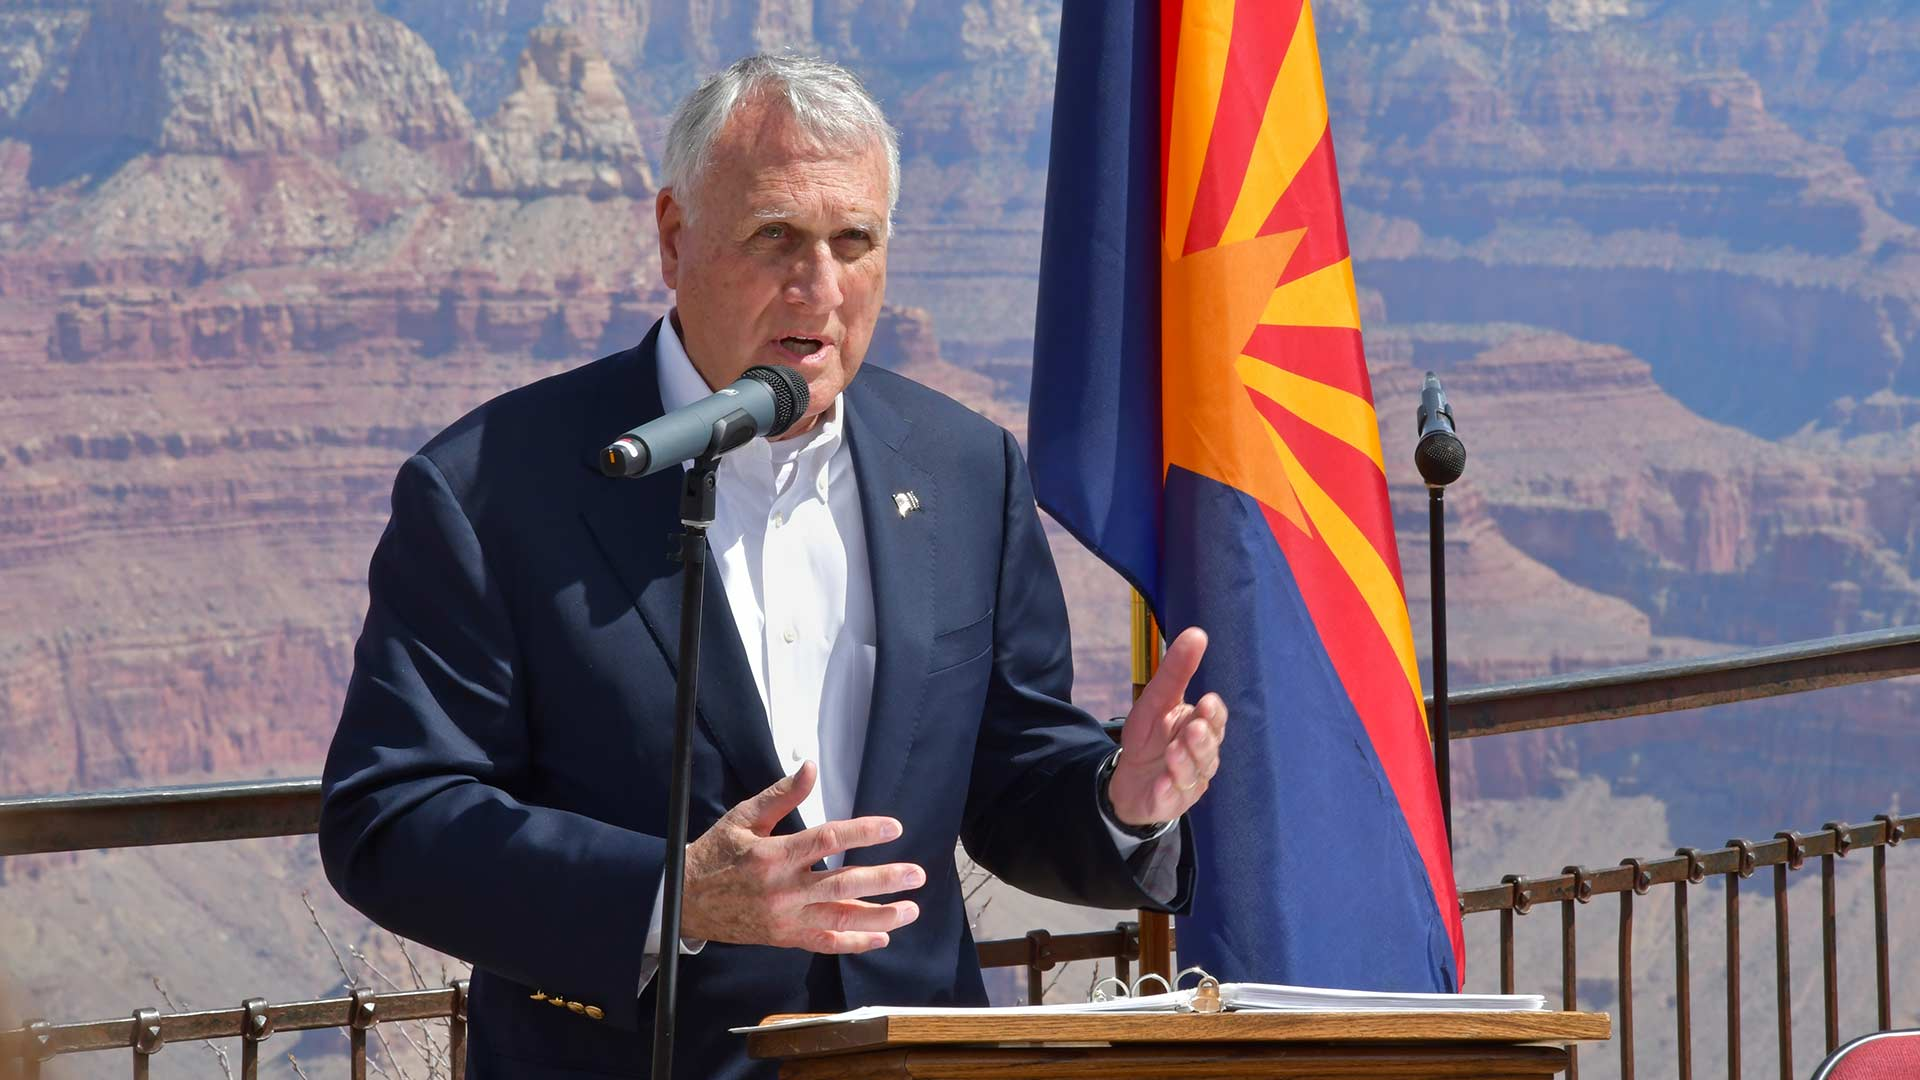 Jon Kyl at an event at the Grand Canyon honoring bipartisan legacies of late Arizona politicians Morris K. Udall and John McCain, who died after the April 2018 event.